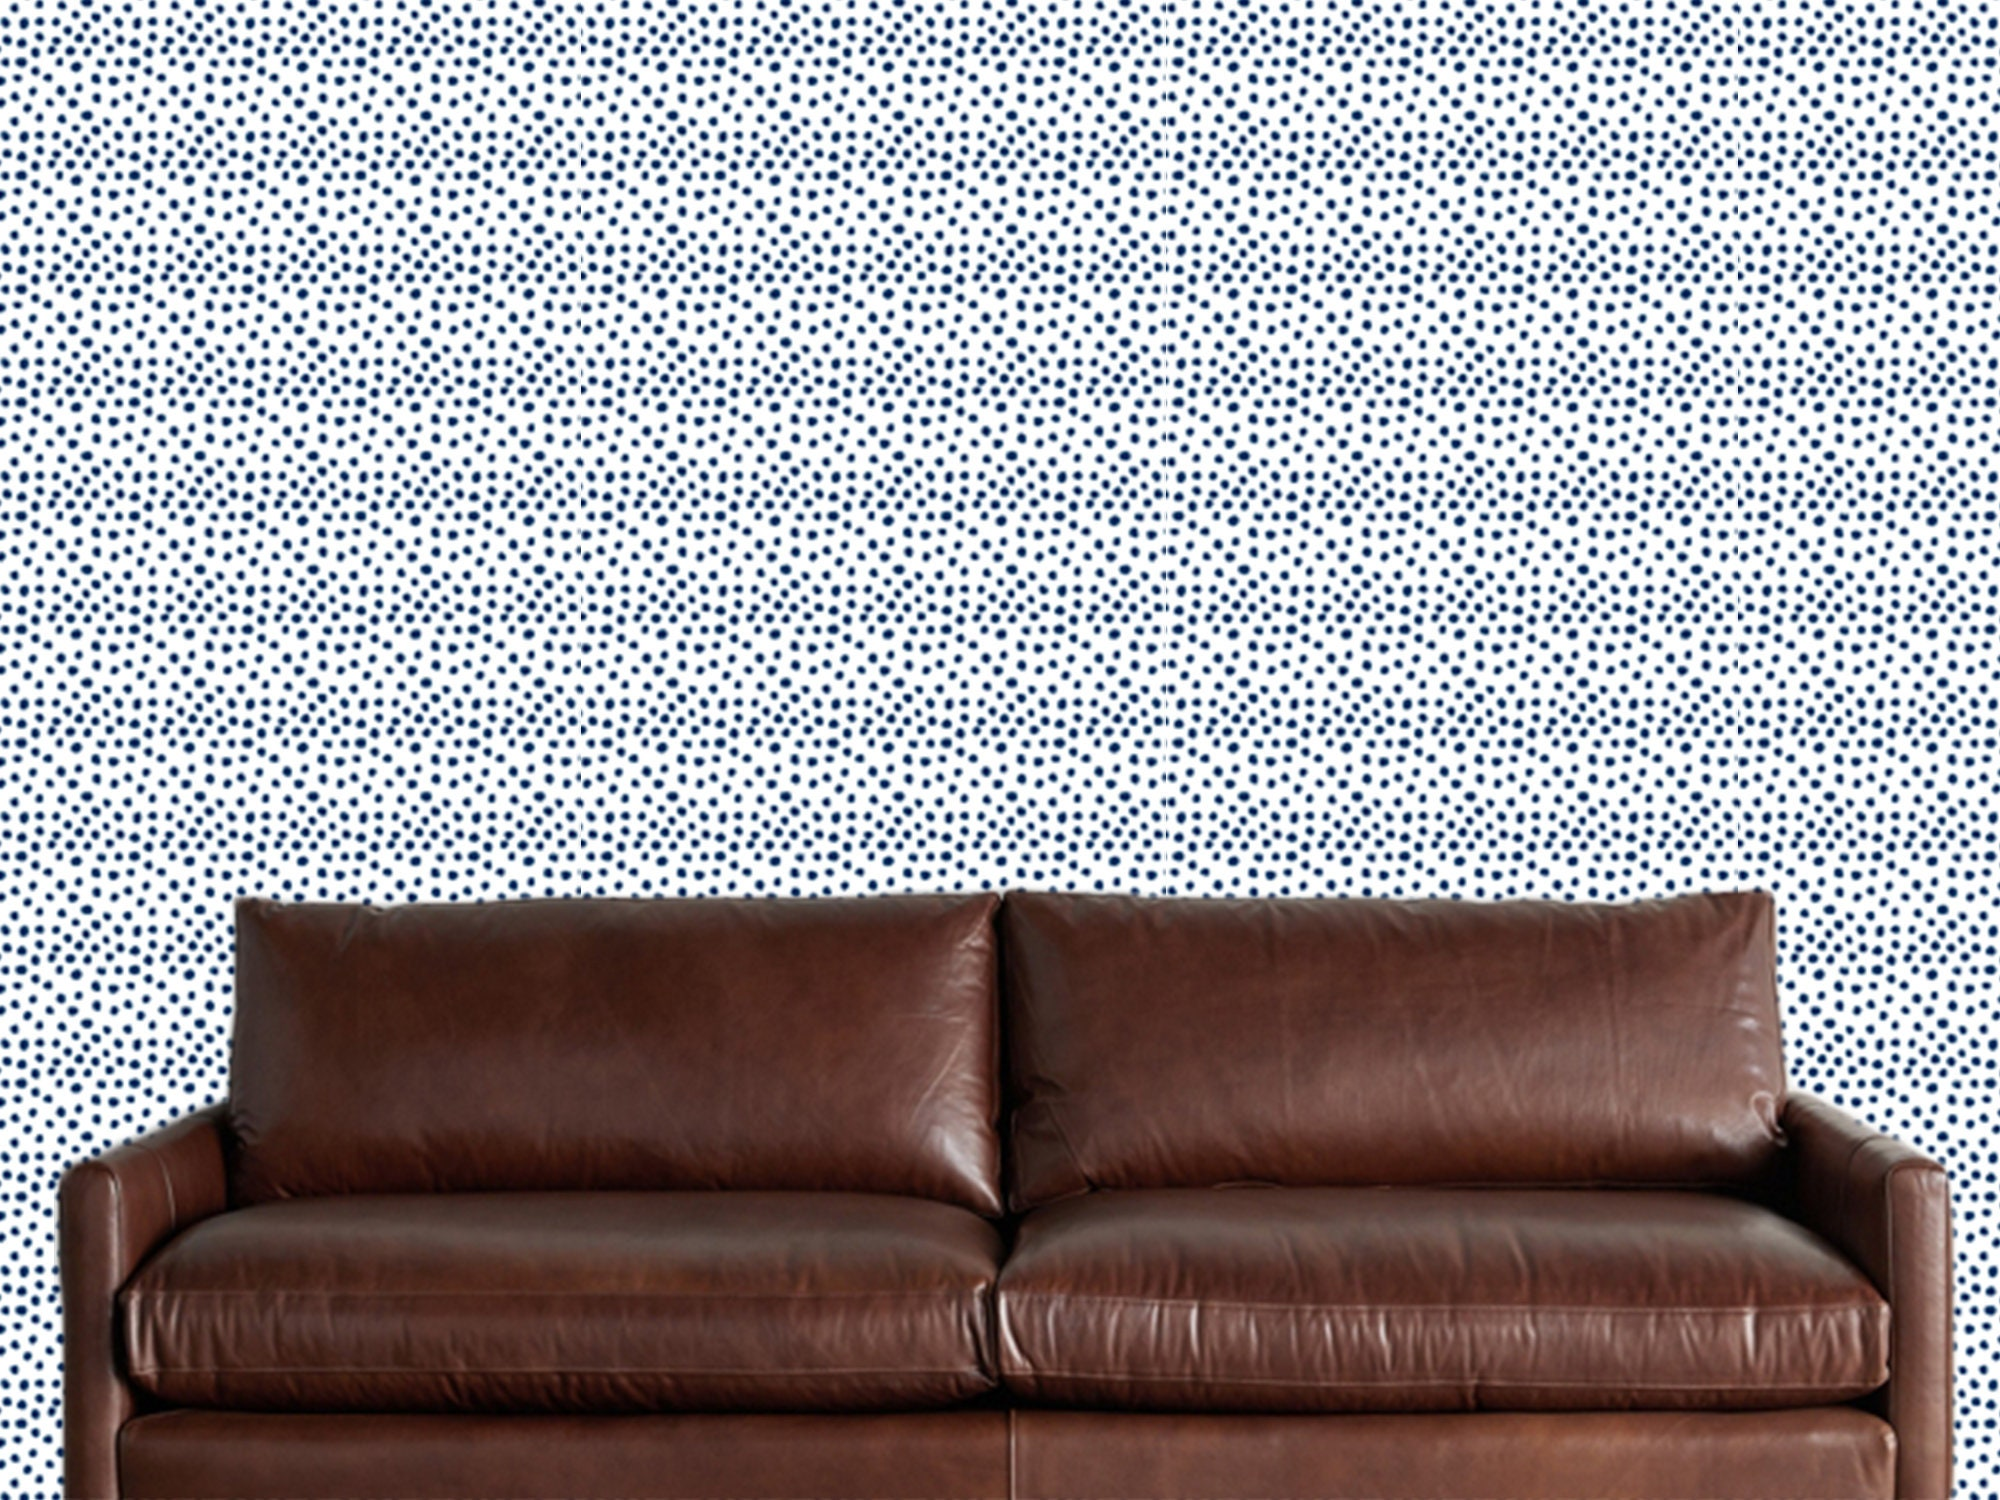 Navy Blue White Dots Abstract Wallpaper Removable Traditional Wallpaper Peel And Stick Wallpaper Blue Wallpaper Self Adhesive Wallpaper